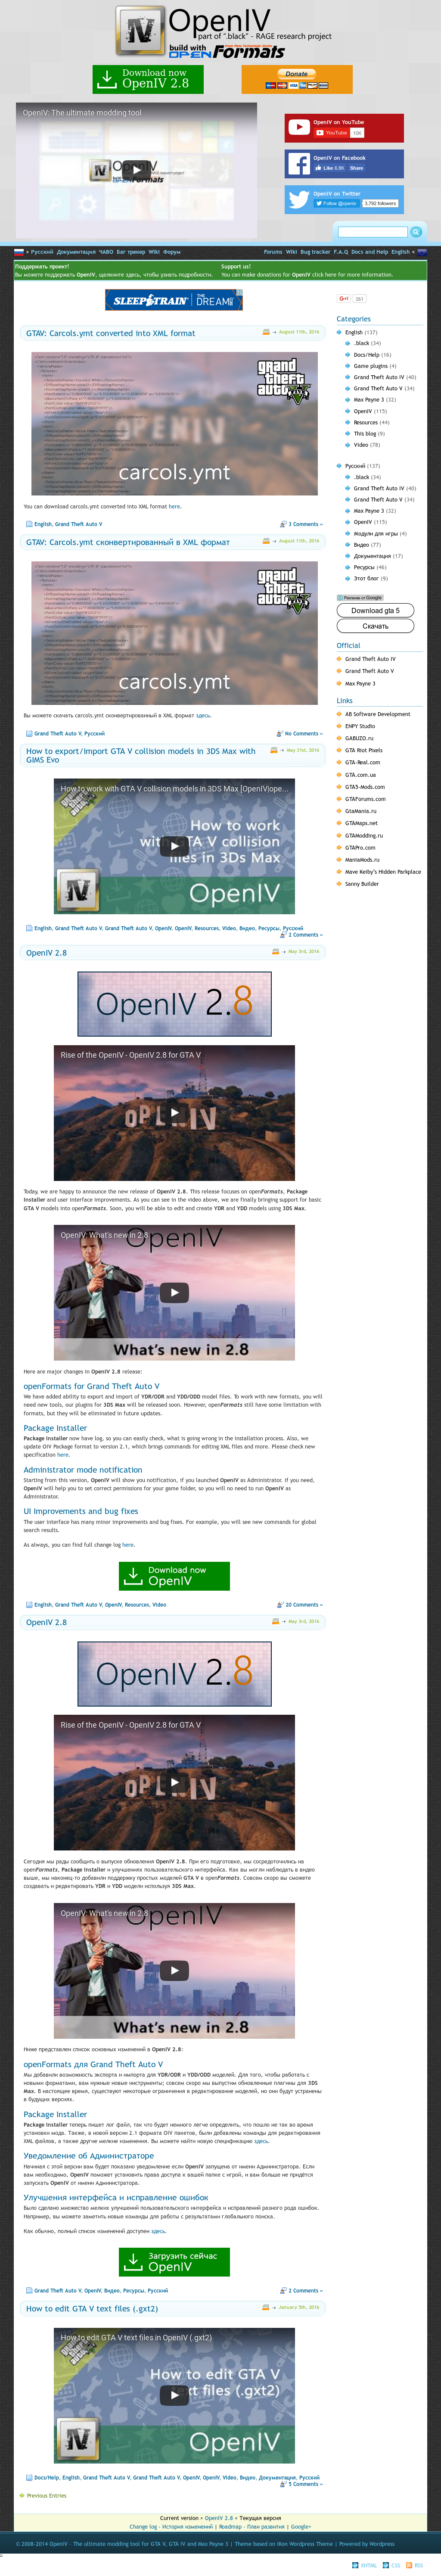 Openiv Competitors, Revenue and Employees - Owler Company Profile